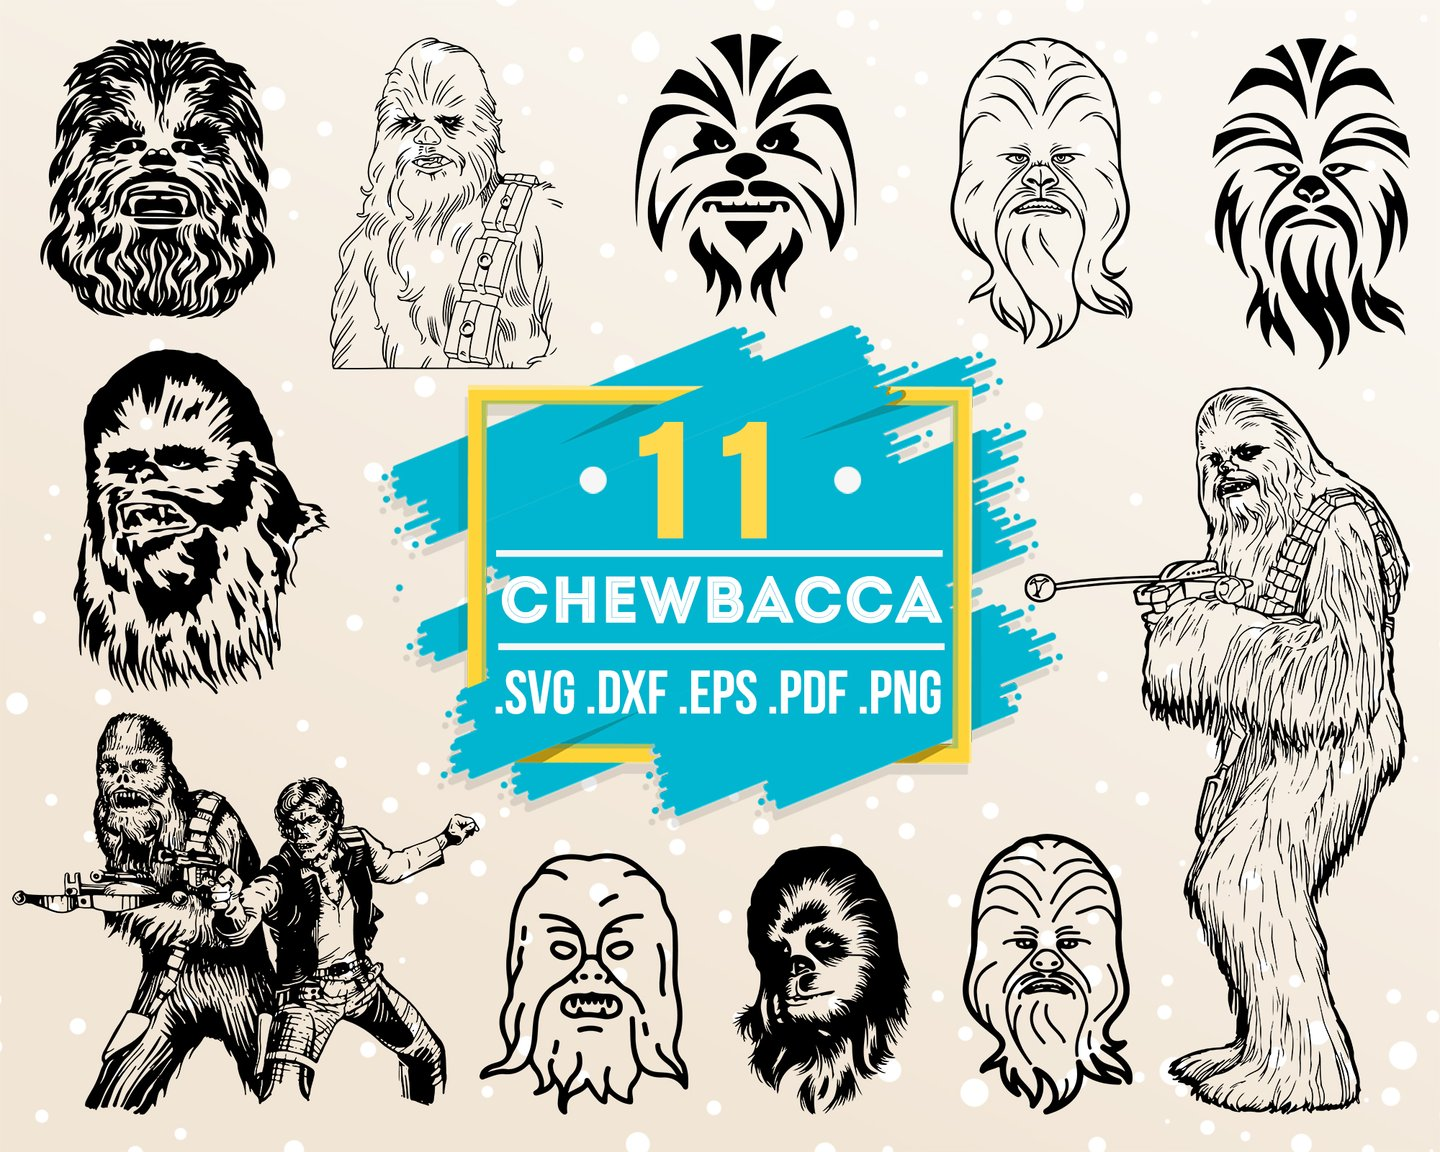 chewbacca svg #1052, Download drawings